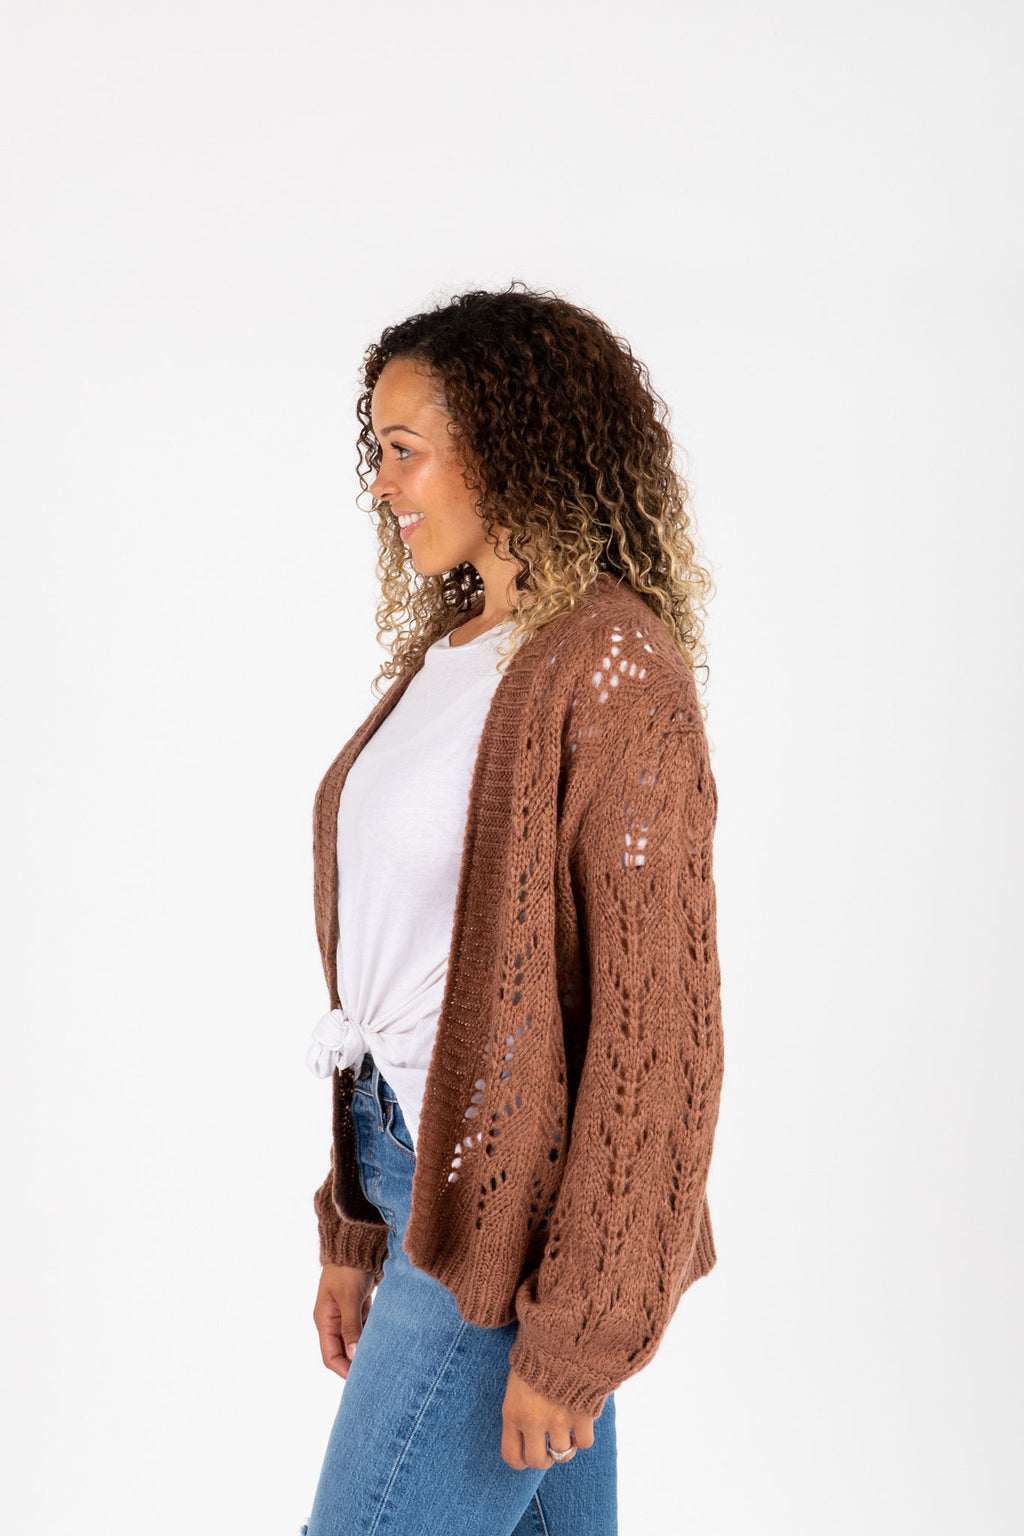 The Graff Knit Cardigan in Mocha, studio shot; front view